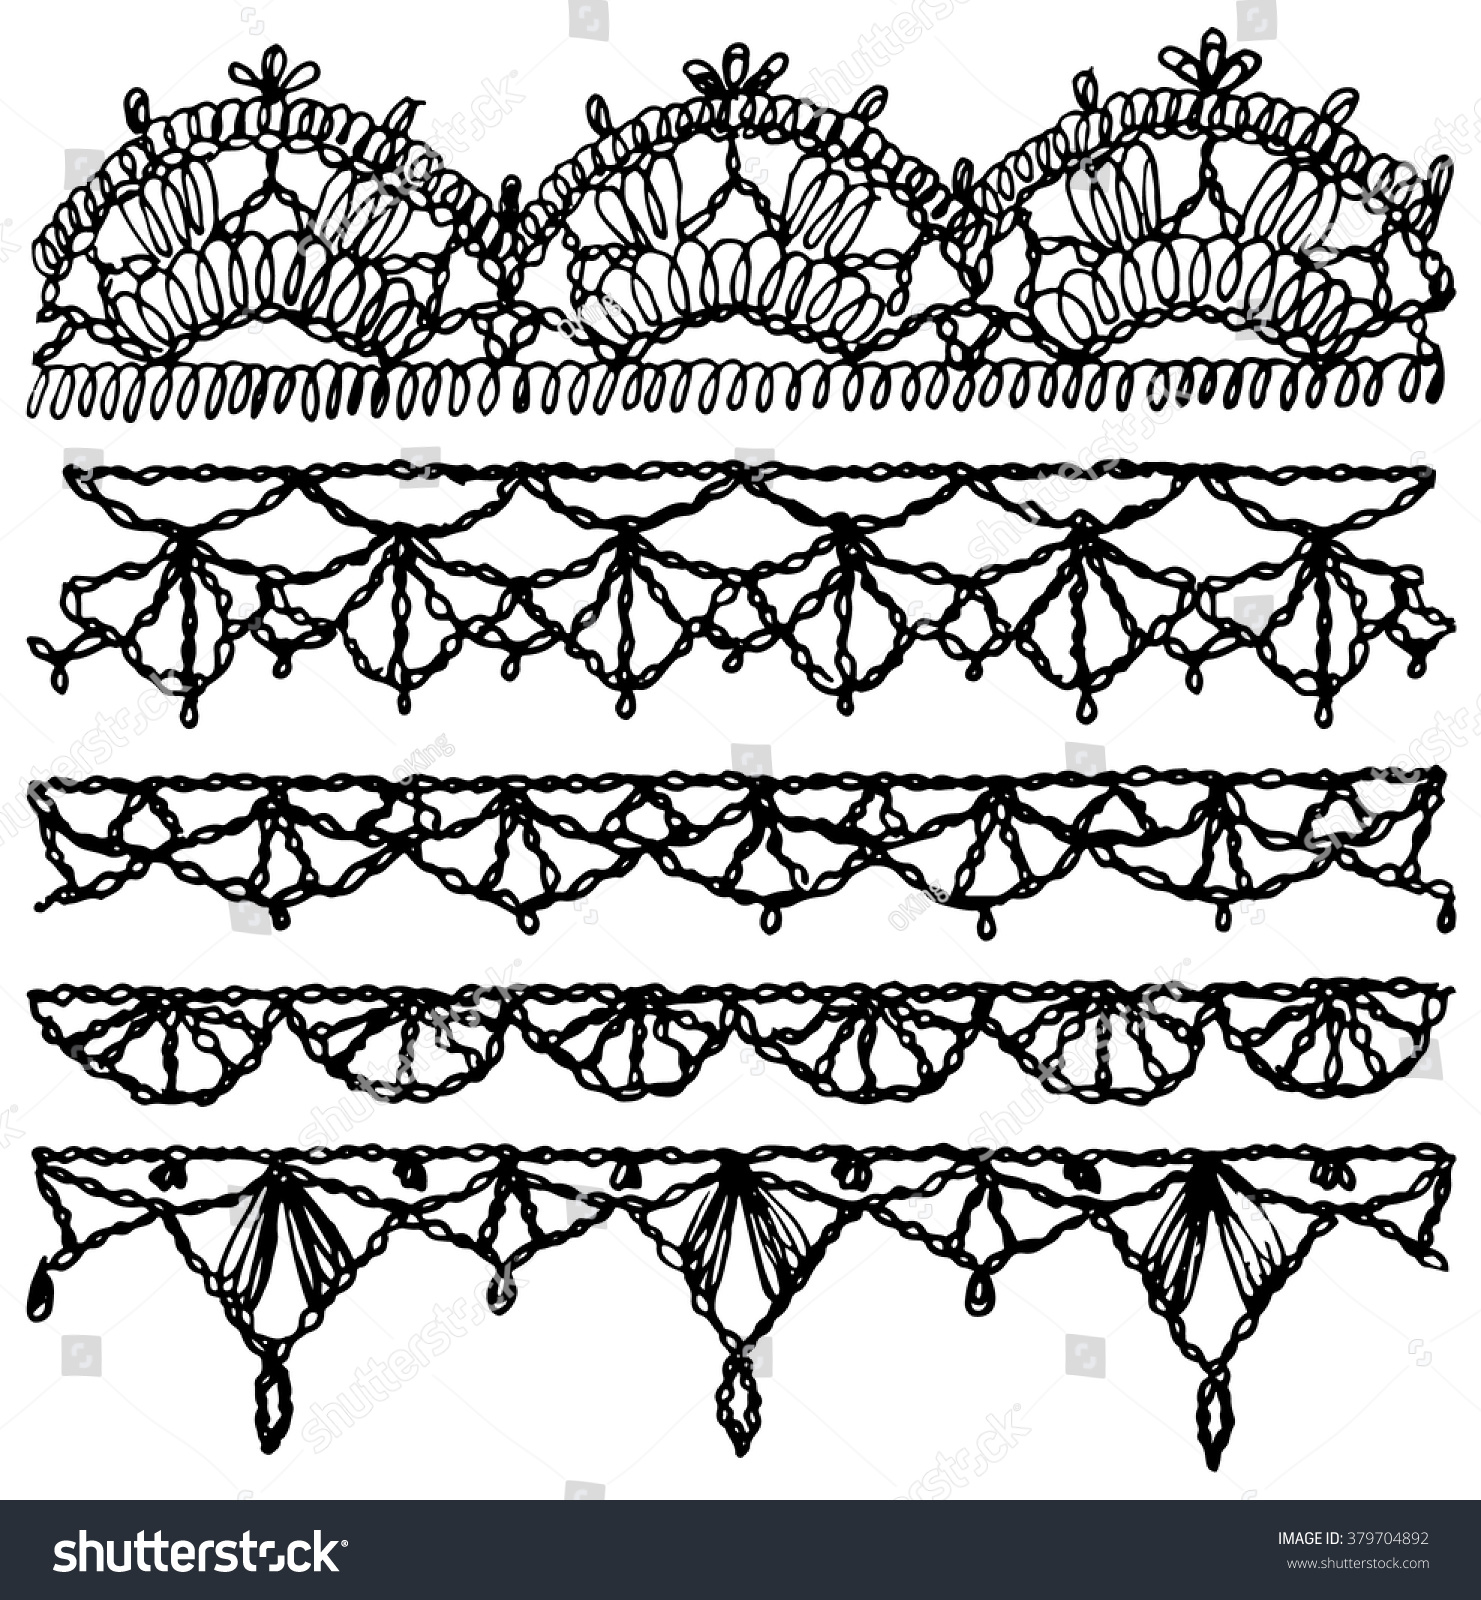 Set of isolated knitted lace borders with an openwork pattern Vector illustration